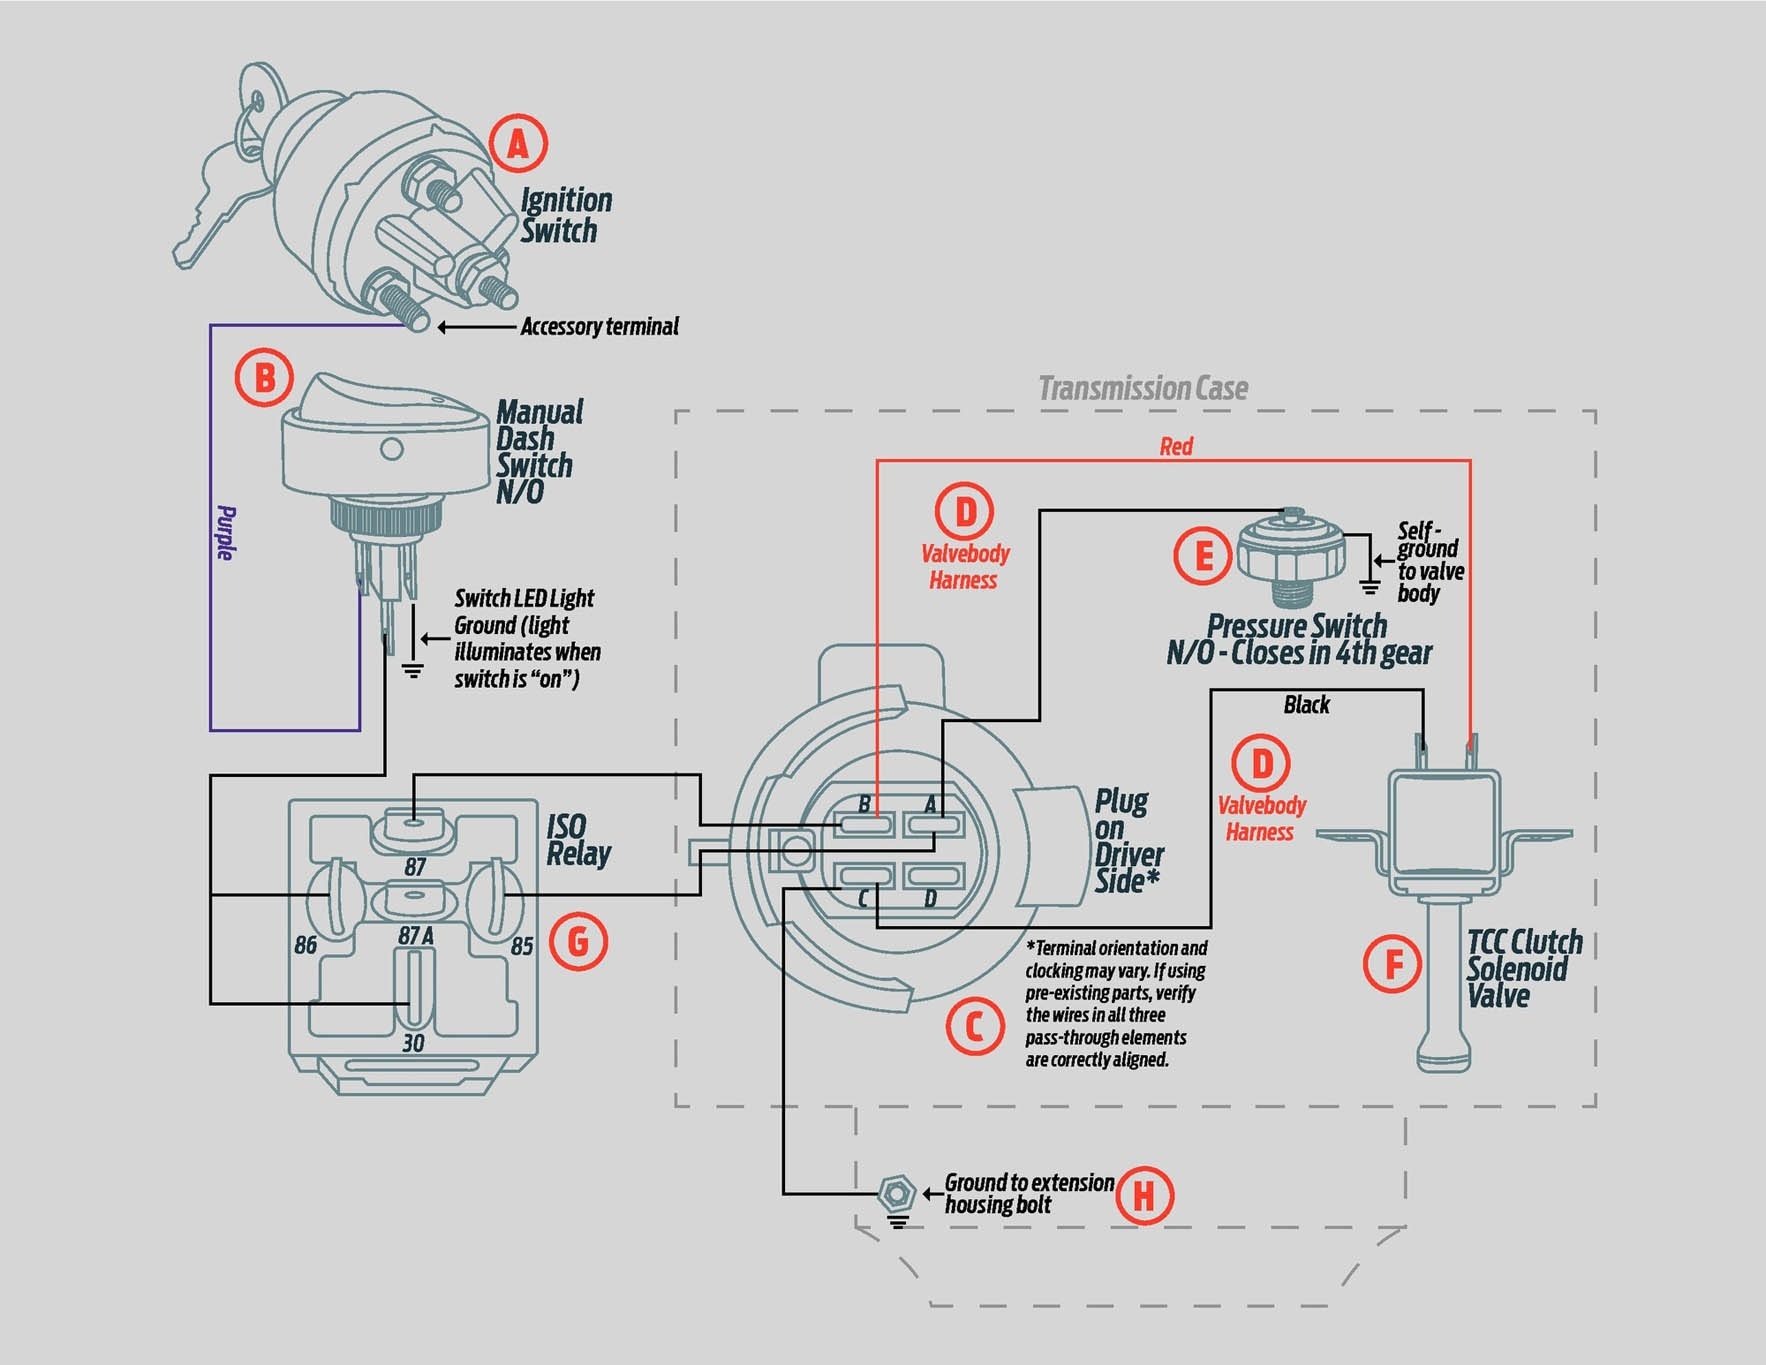 700r4 gm transmission wiring diagram circuit diagram template th350 transmission cooling lines diagrams gm transmission diagrams [ 1766 x 1365 Pixel ]